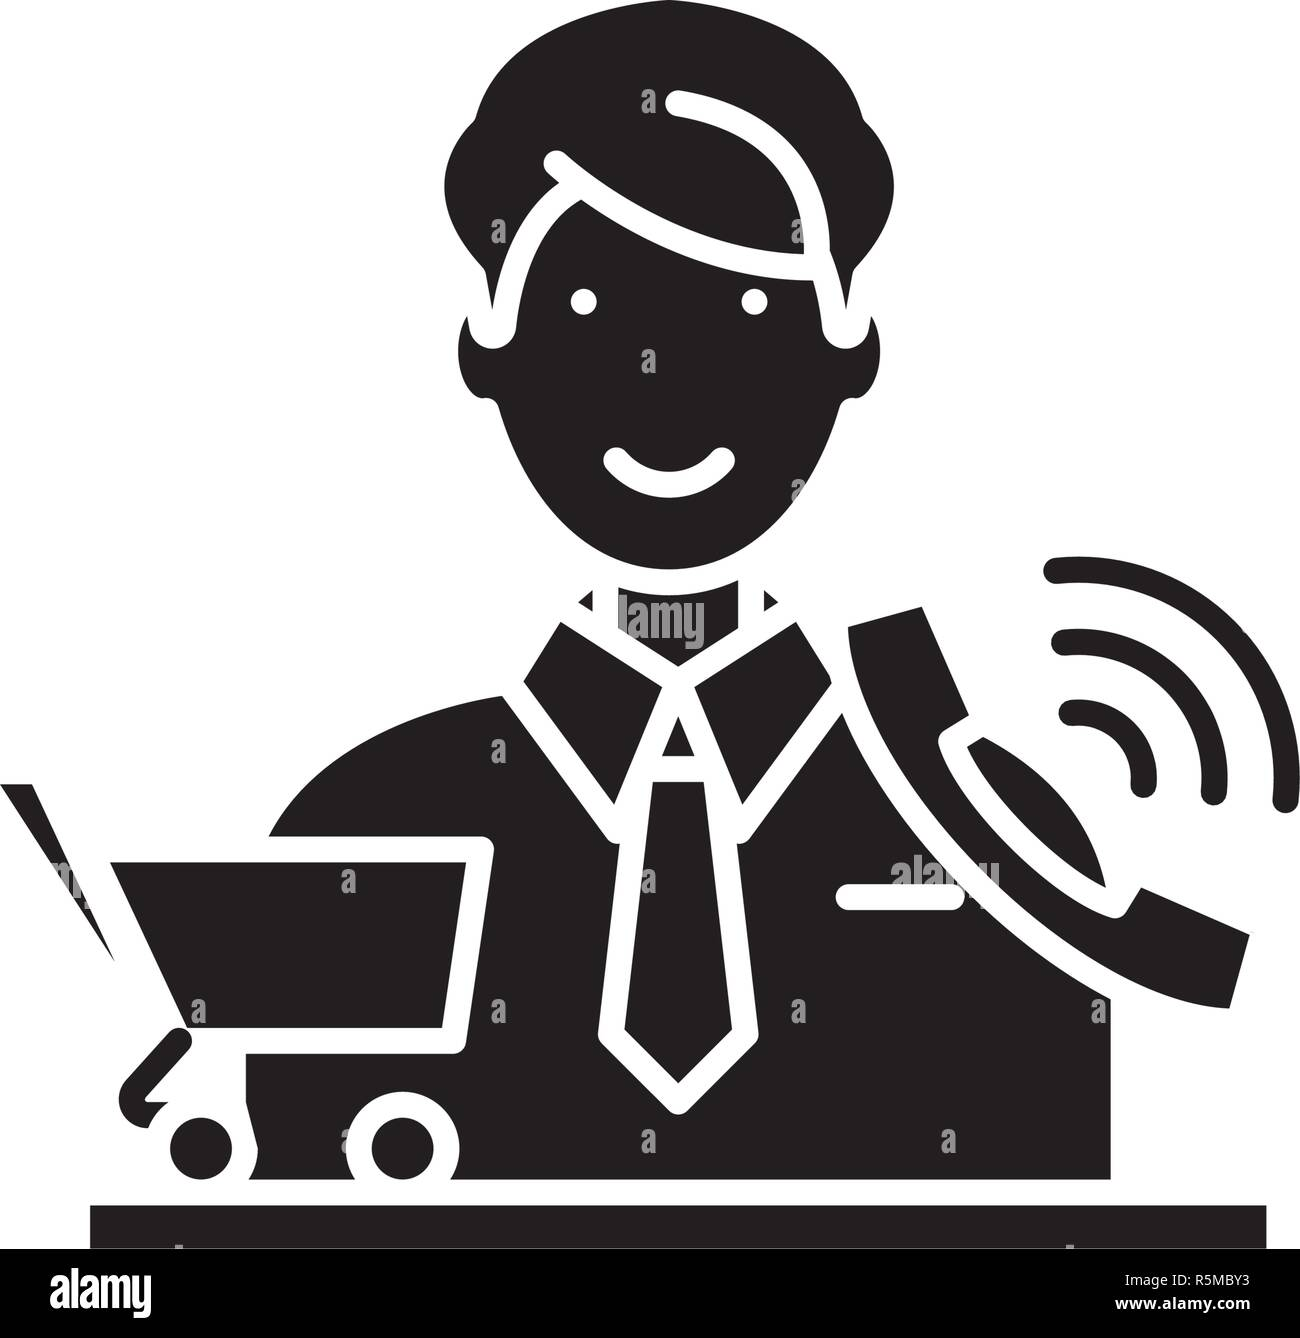 Telemarketing black icon, vector sign on isolated background. Telemarketing concept symbol, illustration  Stock Vector